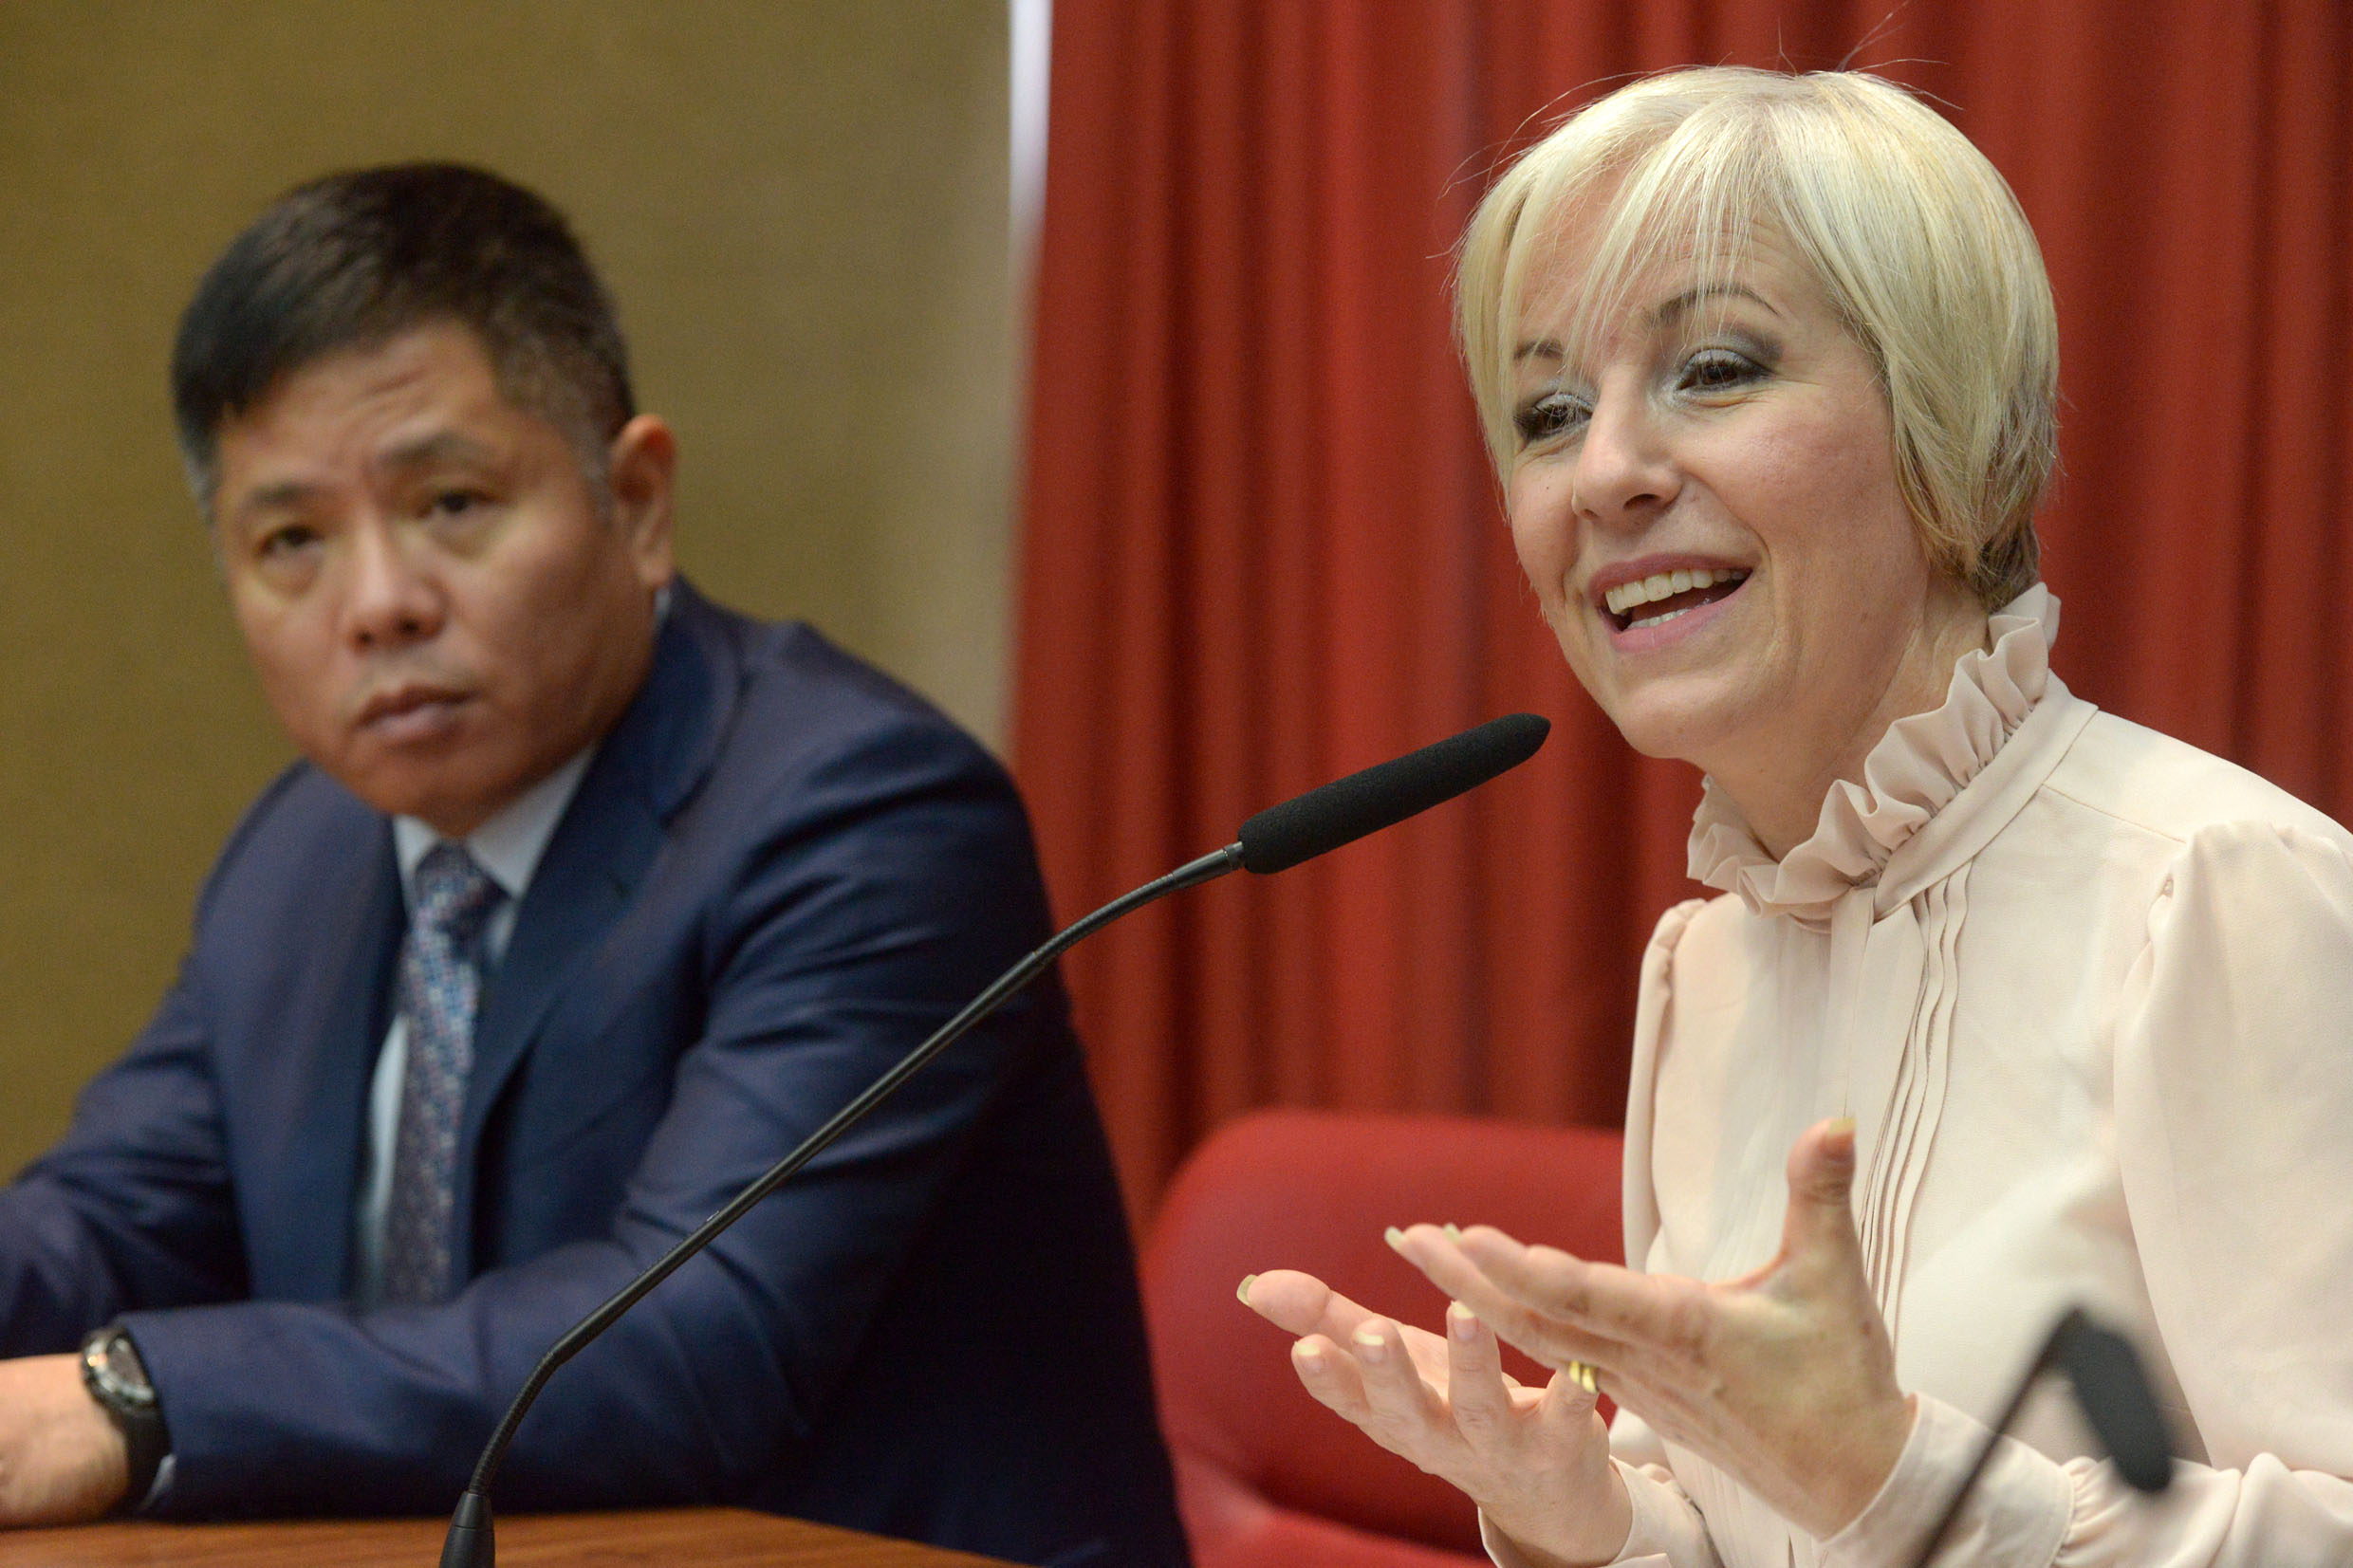 Zhang Wei e Damaris Moura<a style='float:right' href='https://www3.al.sp.gov.br/repositorio/noticia/N-07-2019/fg237190.jpg' target=_blank><img src='/_img/material-file-download-white.png' width='14px' alt='Clique para baixar a imagem'></a>